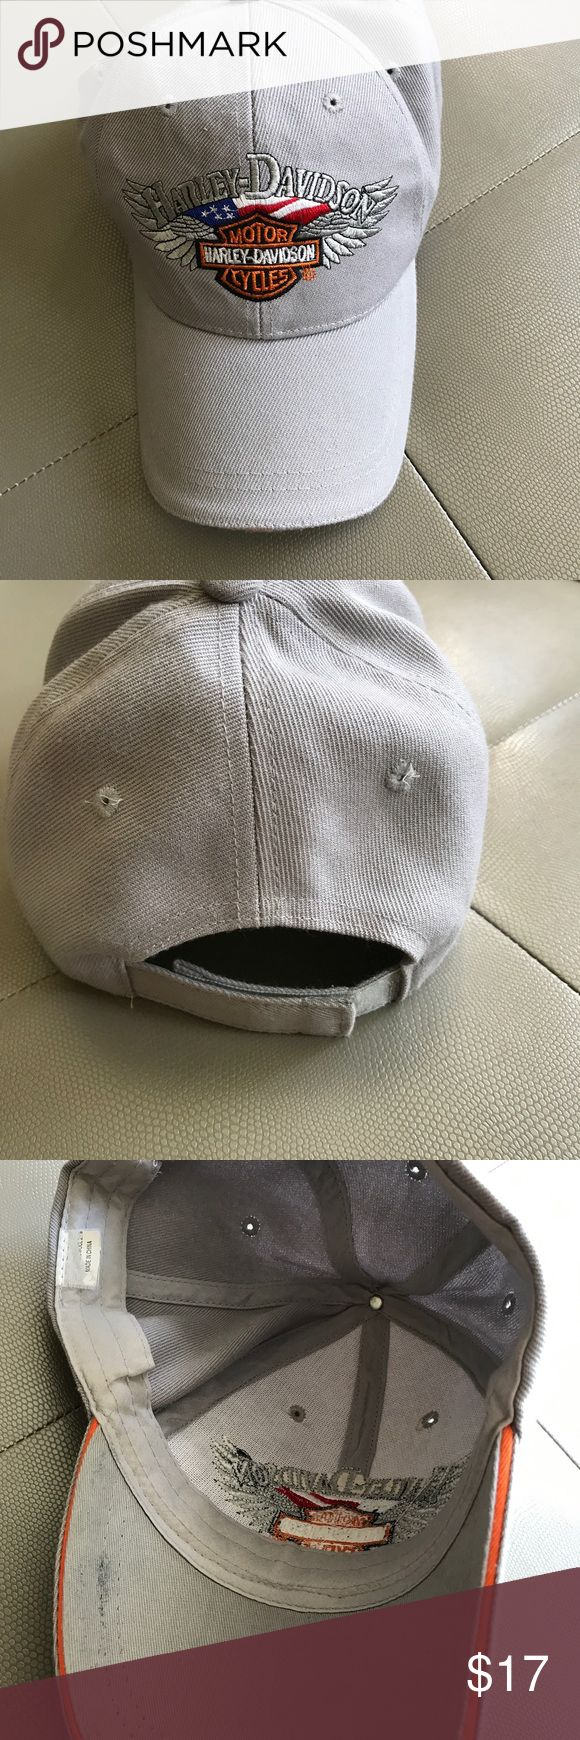 Harley Davidson men's hat, used Harley Davidson men's hat, used, pictures show condition of hat, price reflects hat being used, still a great Harley Davidson hat, slightly worn Harley-Davidson Accessories Hats